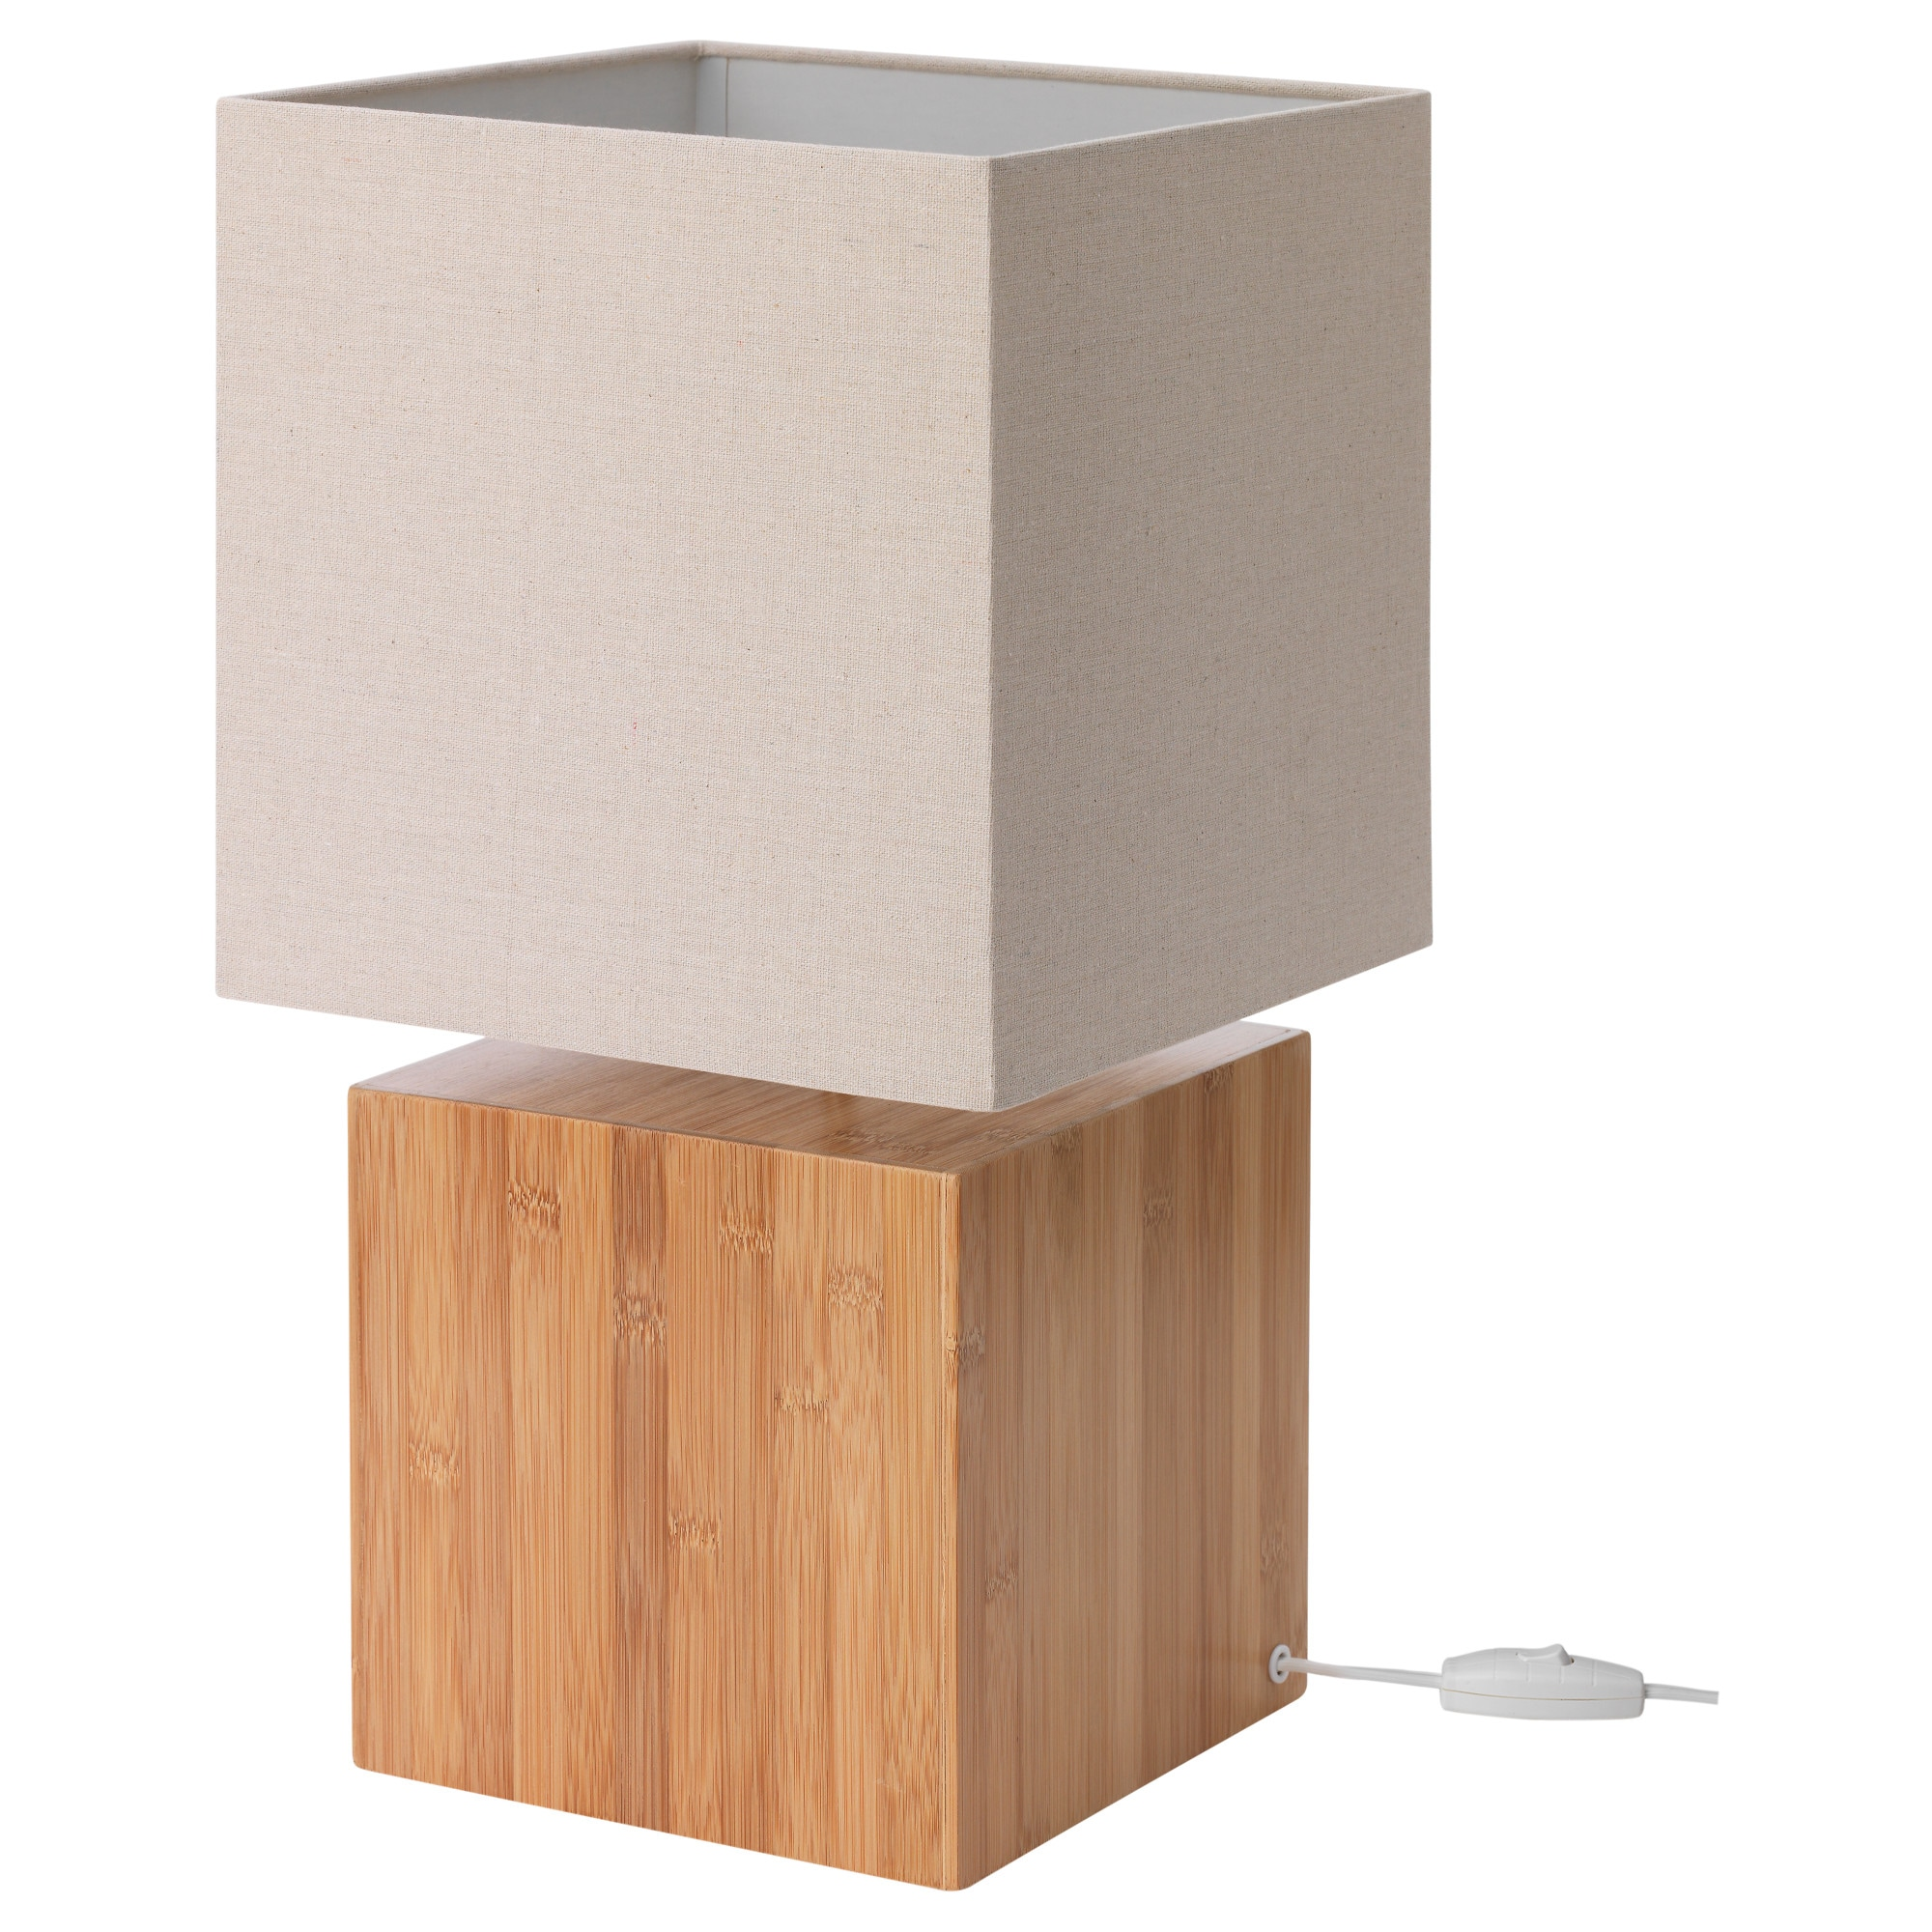 Lamp On Table: Inter IKEA Systems B.V. 1999 - 2016 | Privacy Policy.,Lighting